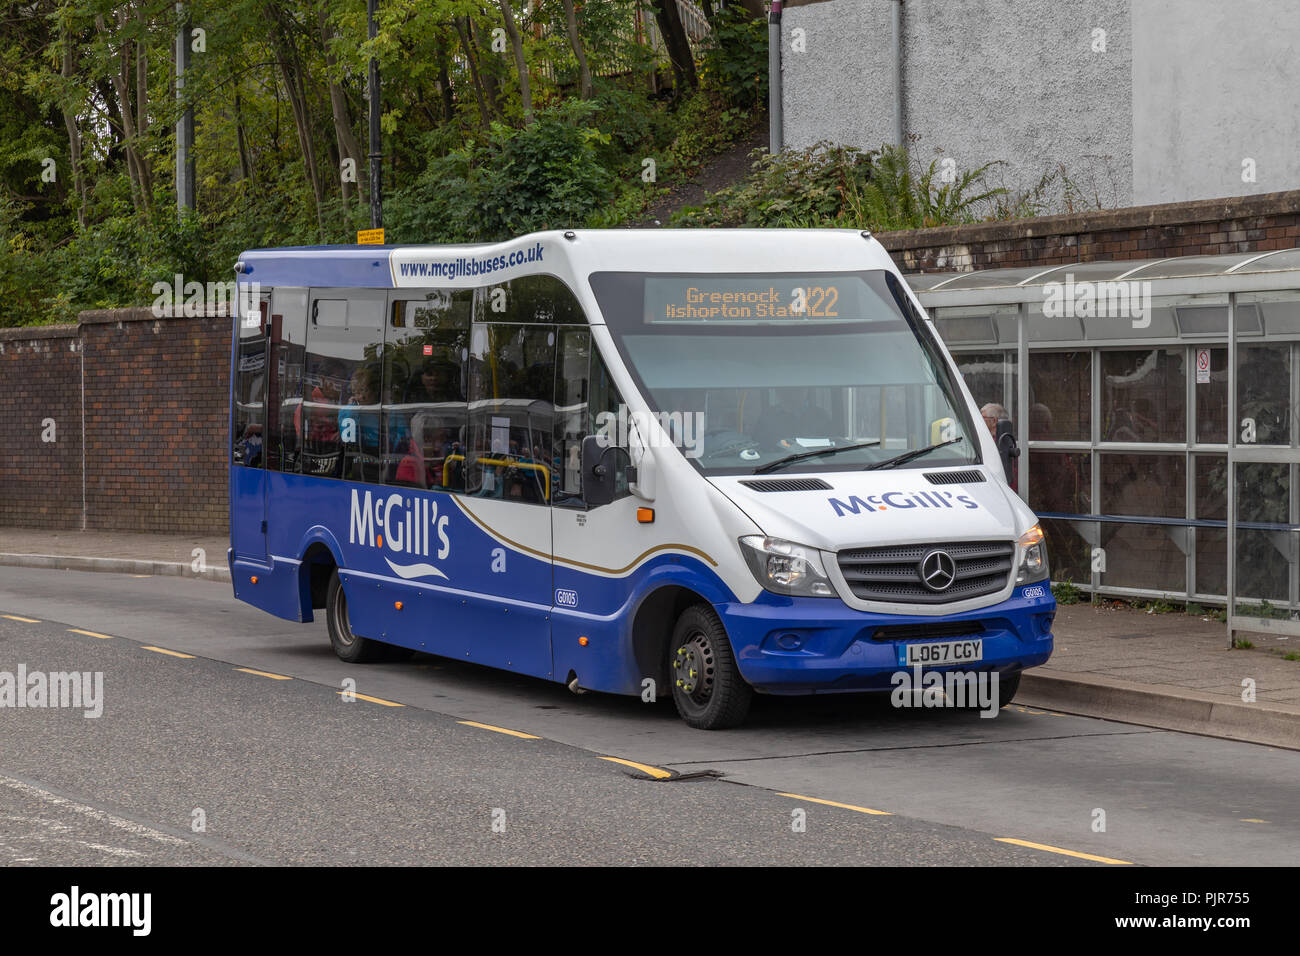 G0105, a McGills Mercedes Benz 516CDI bus at Clydebank operating the X22 service to Greenock - Stock Image